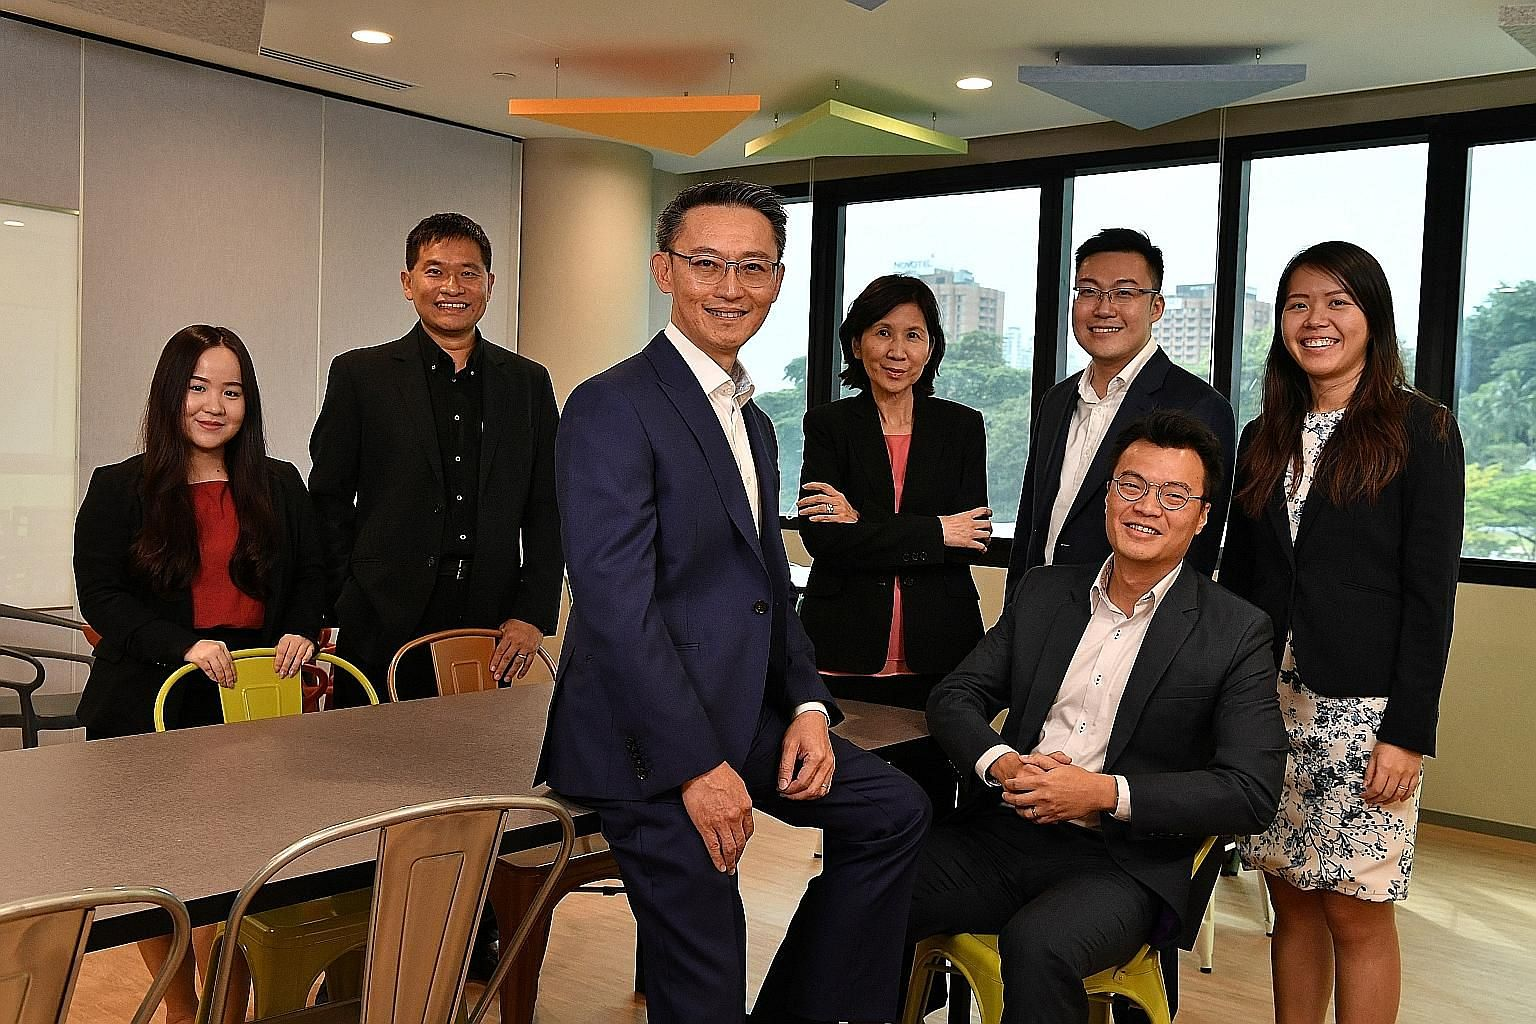 The MTI officials involved in bringing the FTA to fruition include (back row, from left) assistant director Gerbera Choo, deputy secretary (Trade) Luke Goh, director-general (Trade) Ng Bee Kim, director Chua Shun Loong and assistant director Judith H